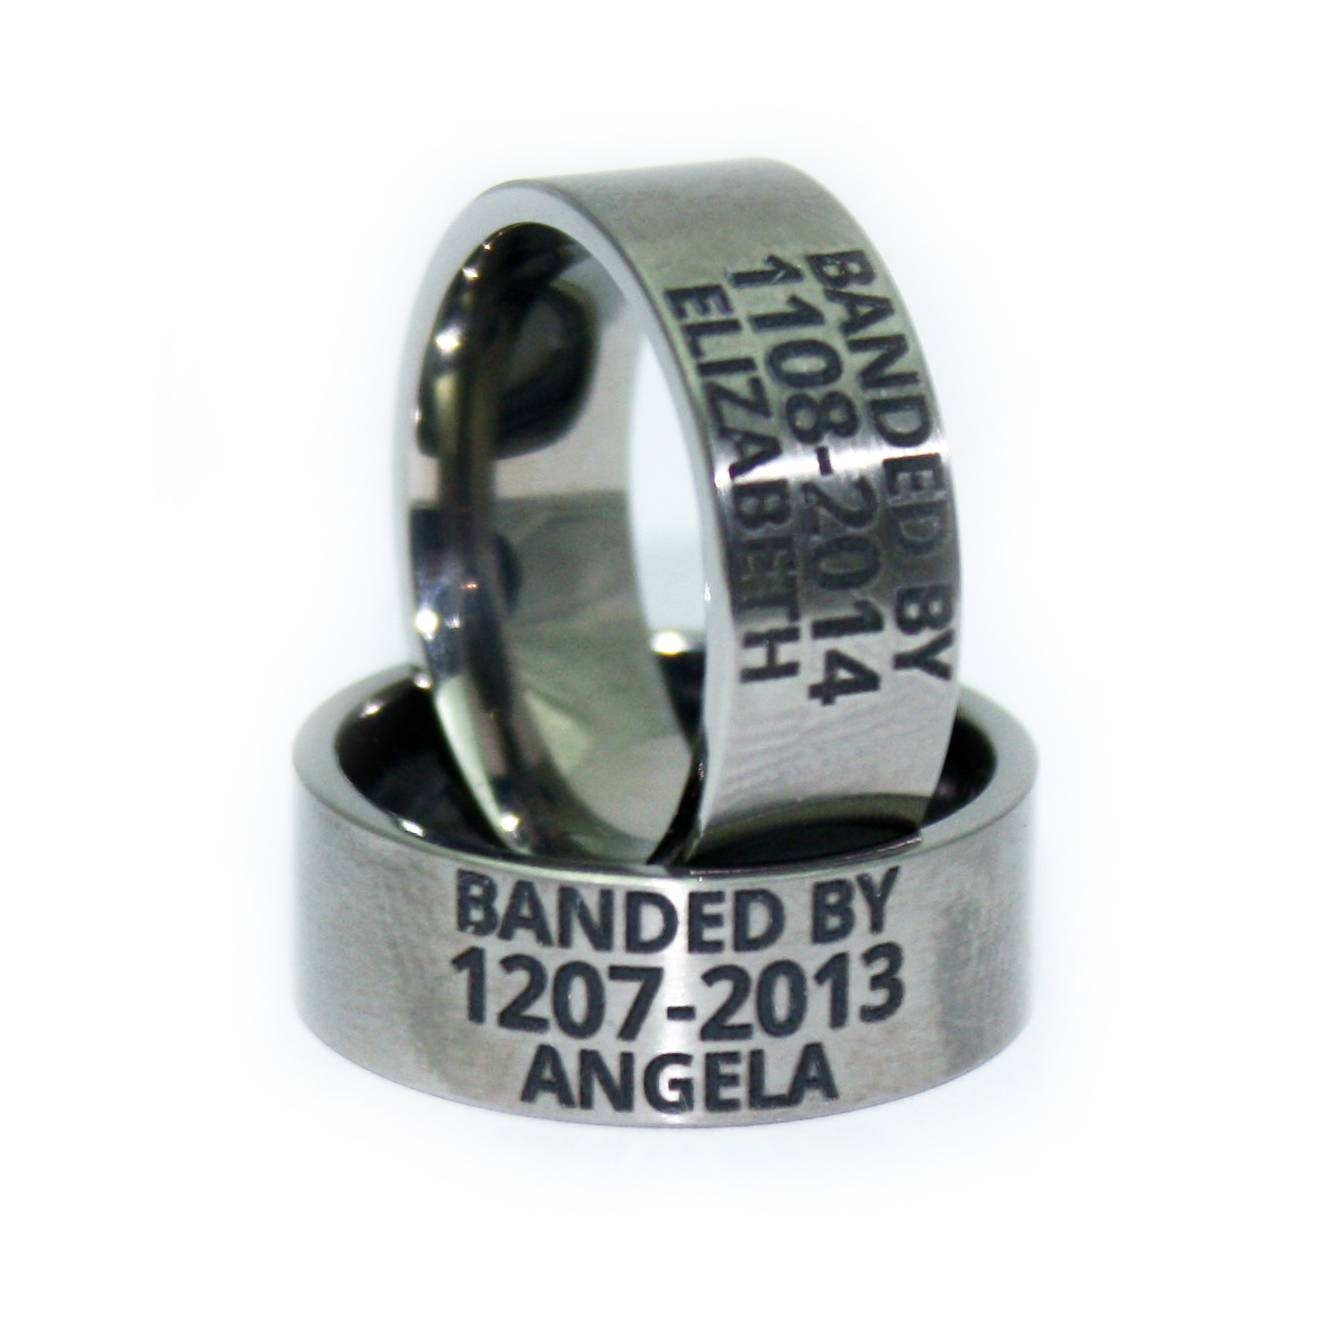 Duck Band – Custom Laser Engraved Wedding Ring Intended For Men's Hunting Wedding Bands (View 5 of 15)